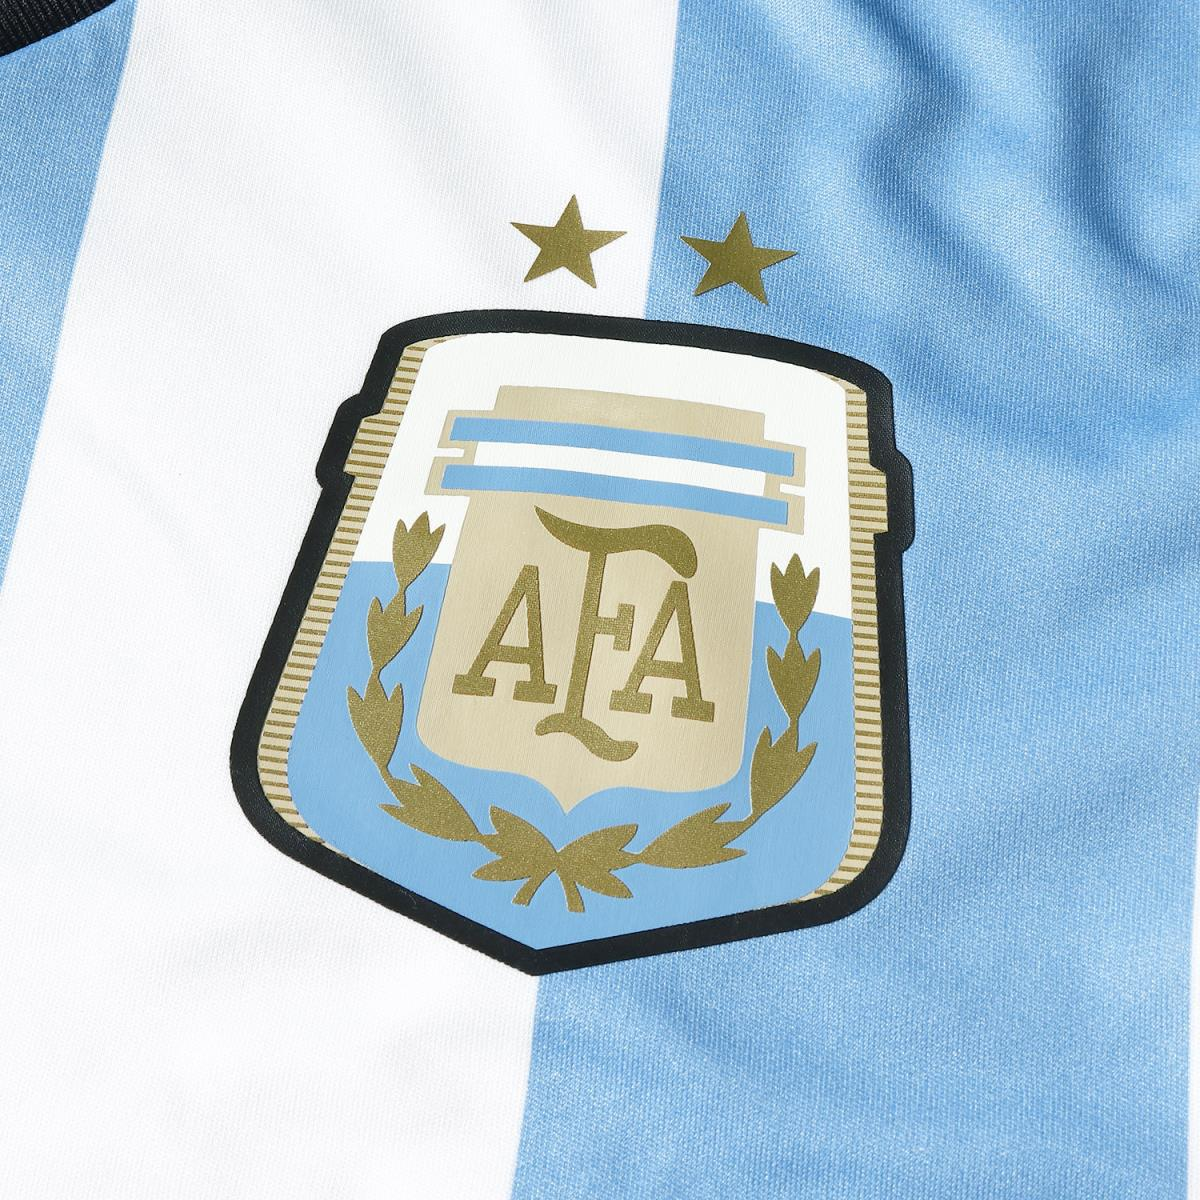 Representative from adidas (Adidas) 14-15 Argentina replica uniform /  soccer jersey white X Columbian blue S